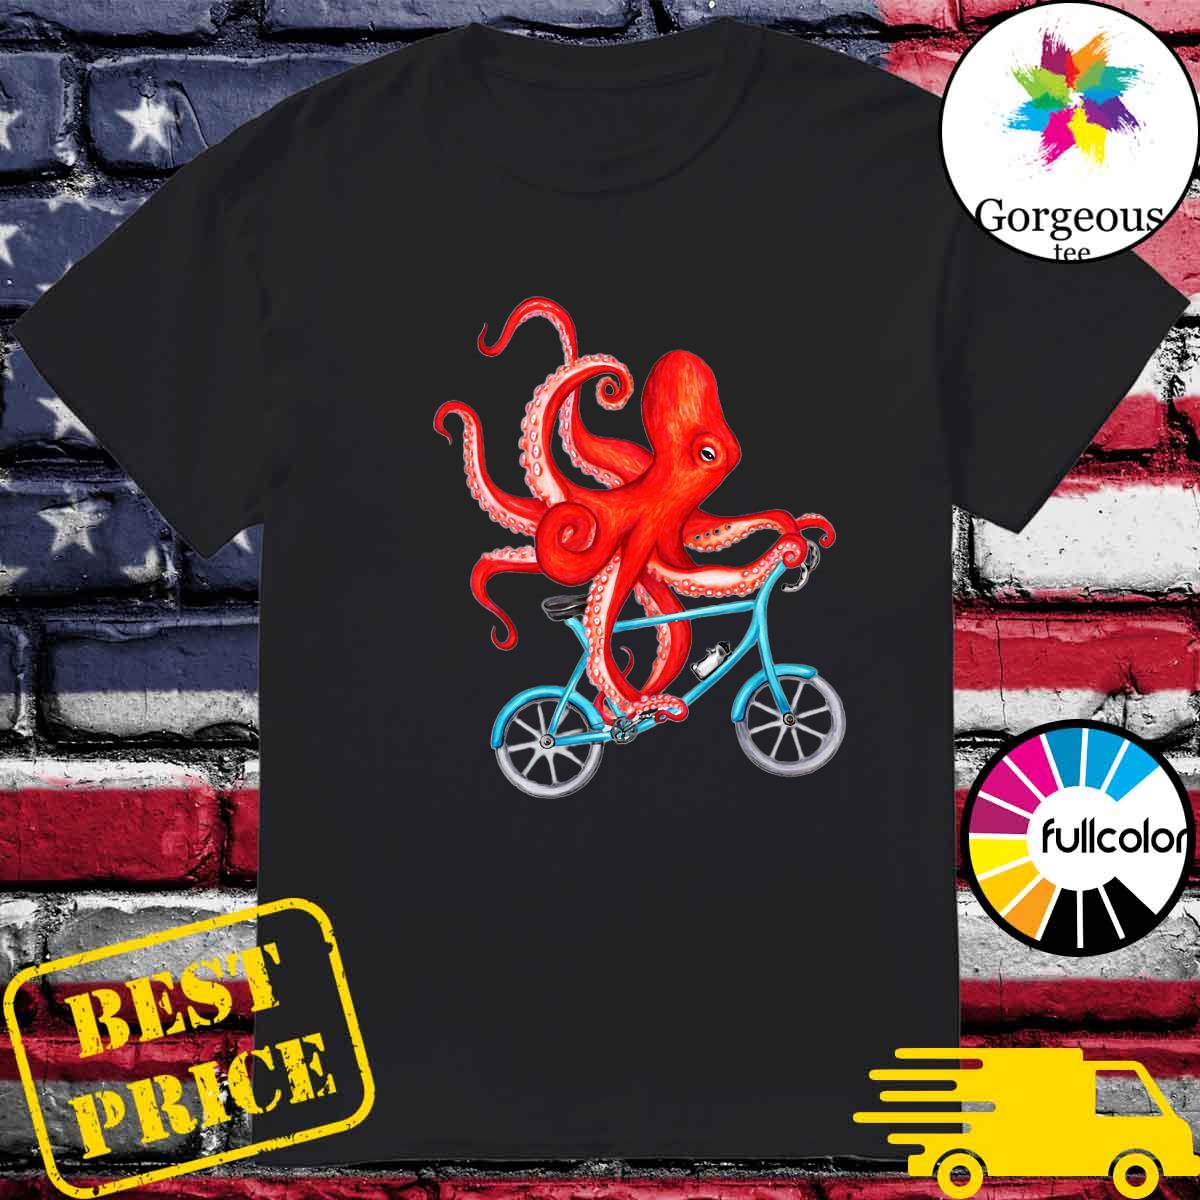 Octopus Bicycle Riding Shirt